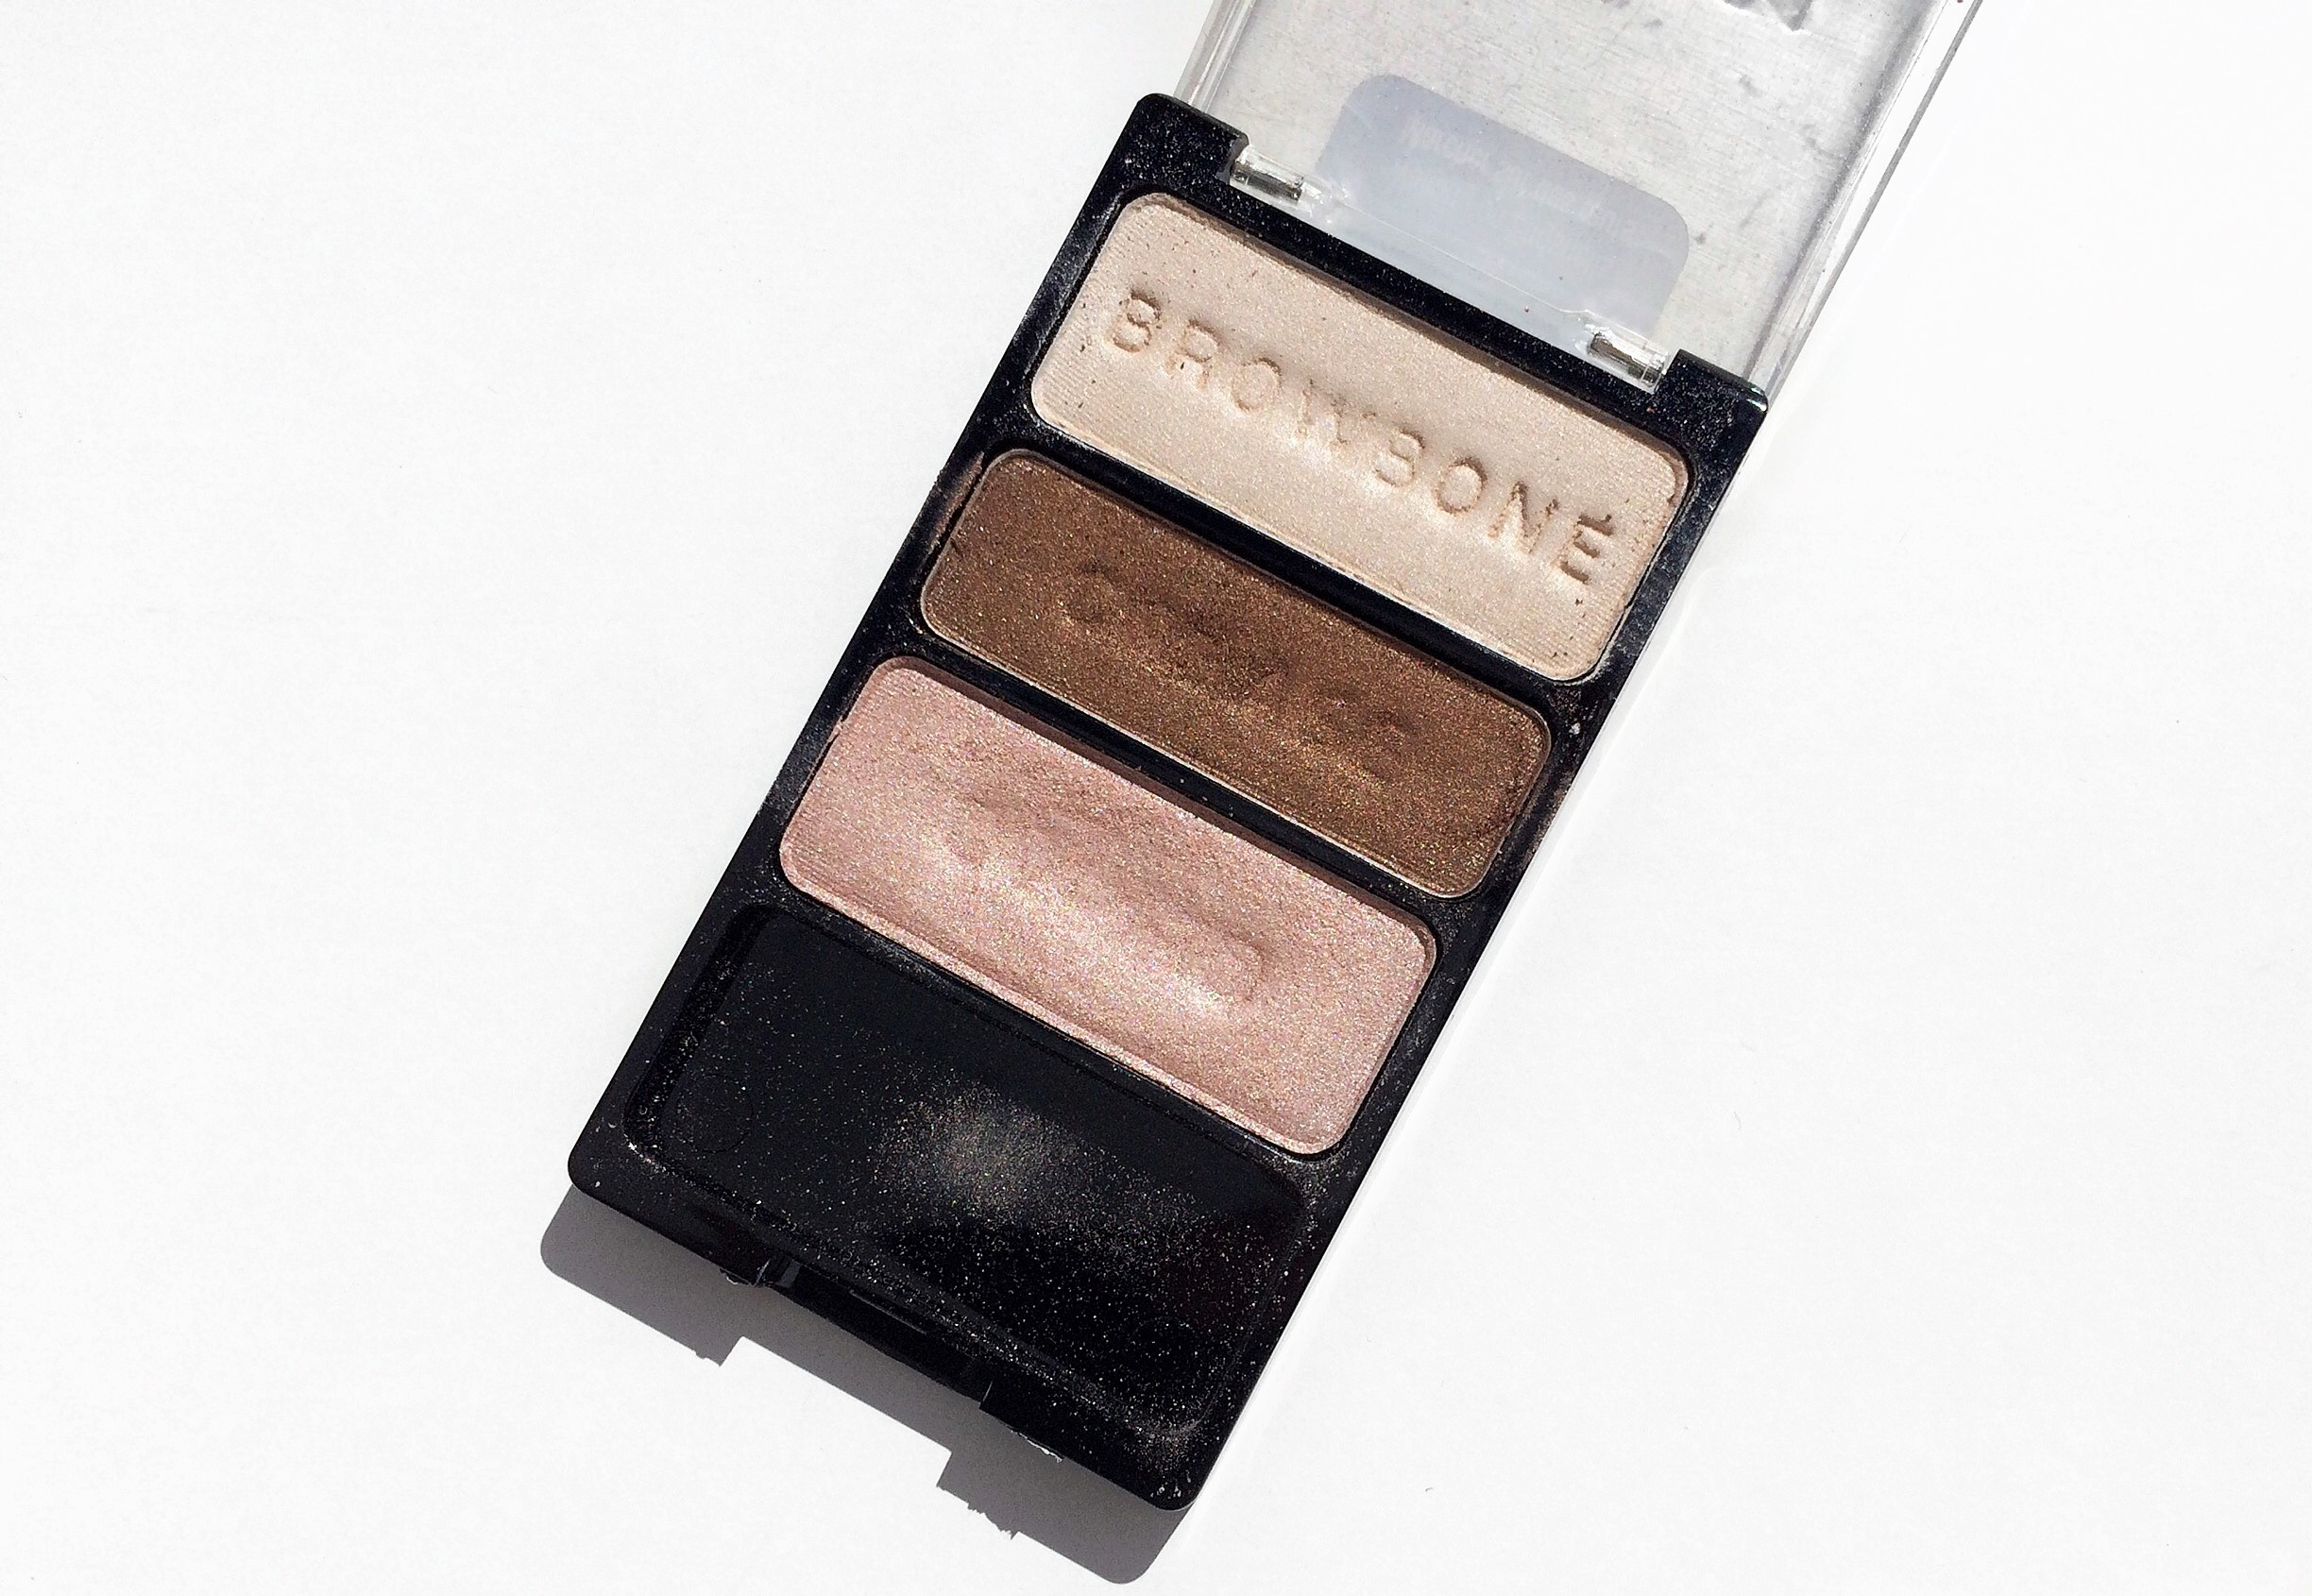 Wet 'n' Wild Walking On Eggshells Eyeshadow Review Swatch and Dupe (6)